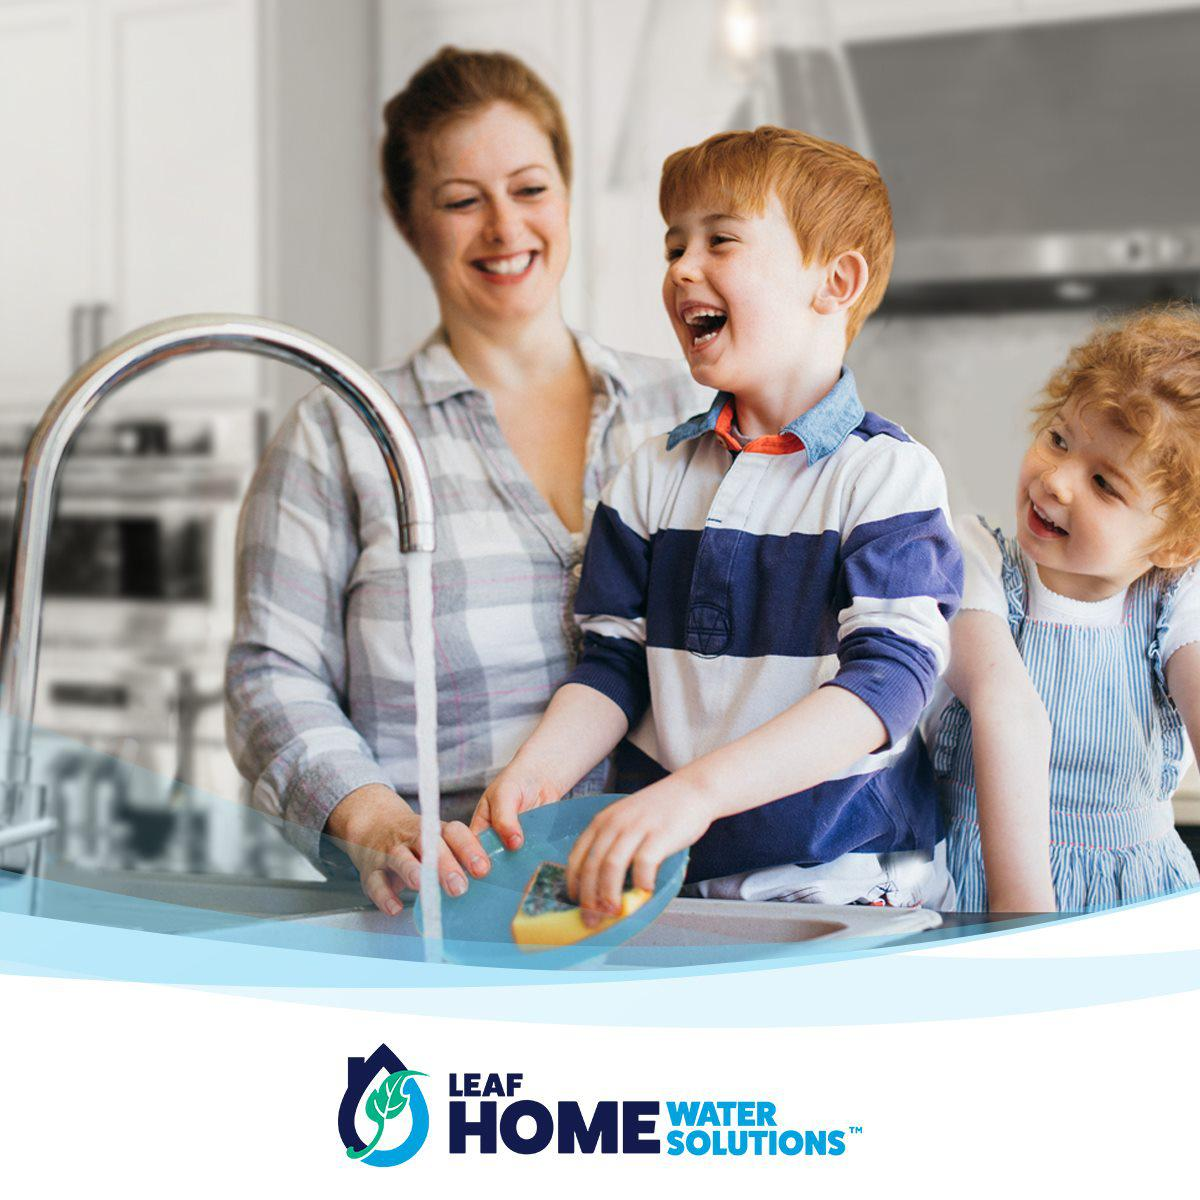 Leaf Home Water Solutions